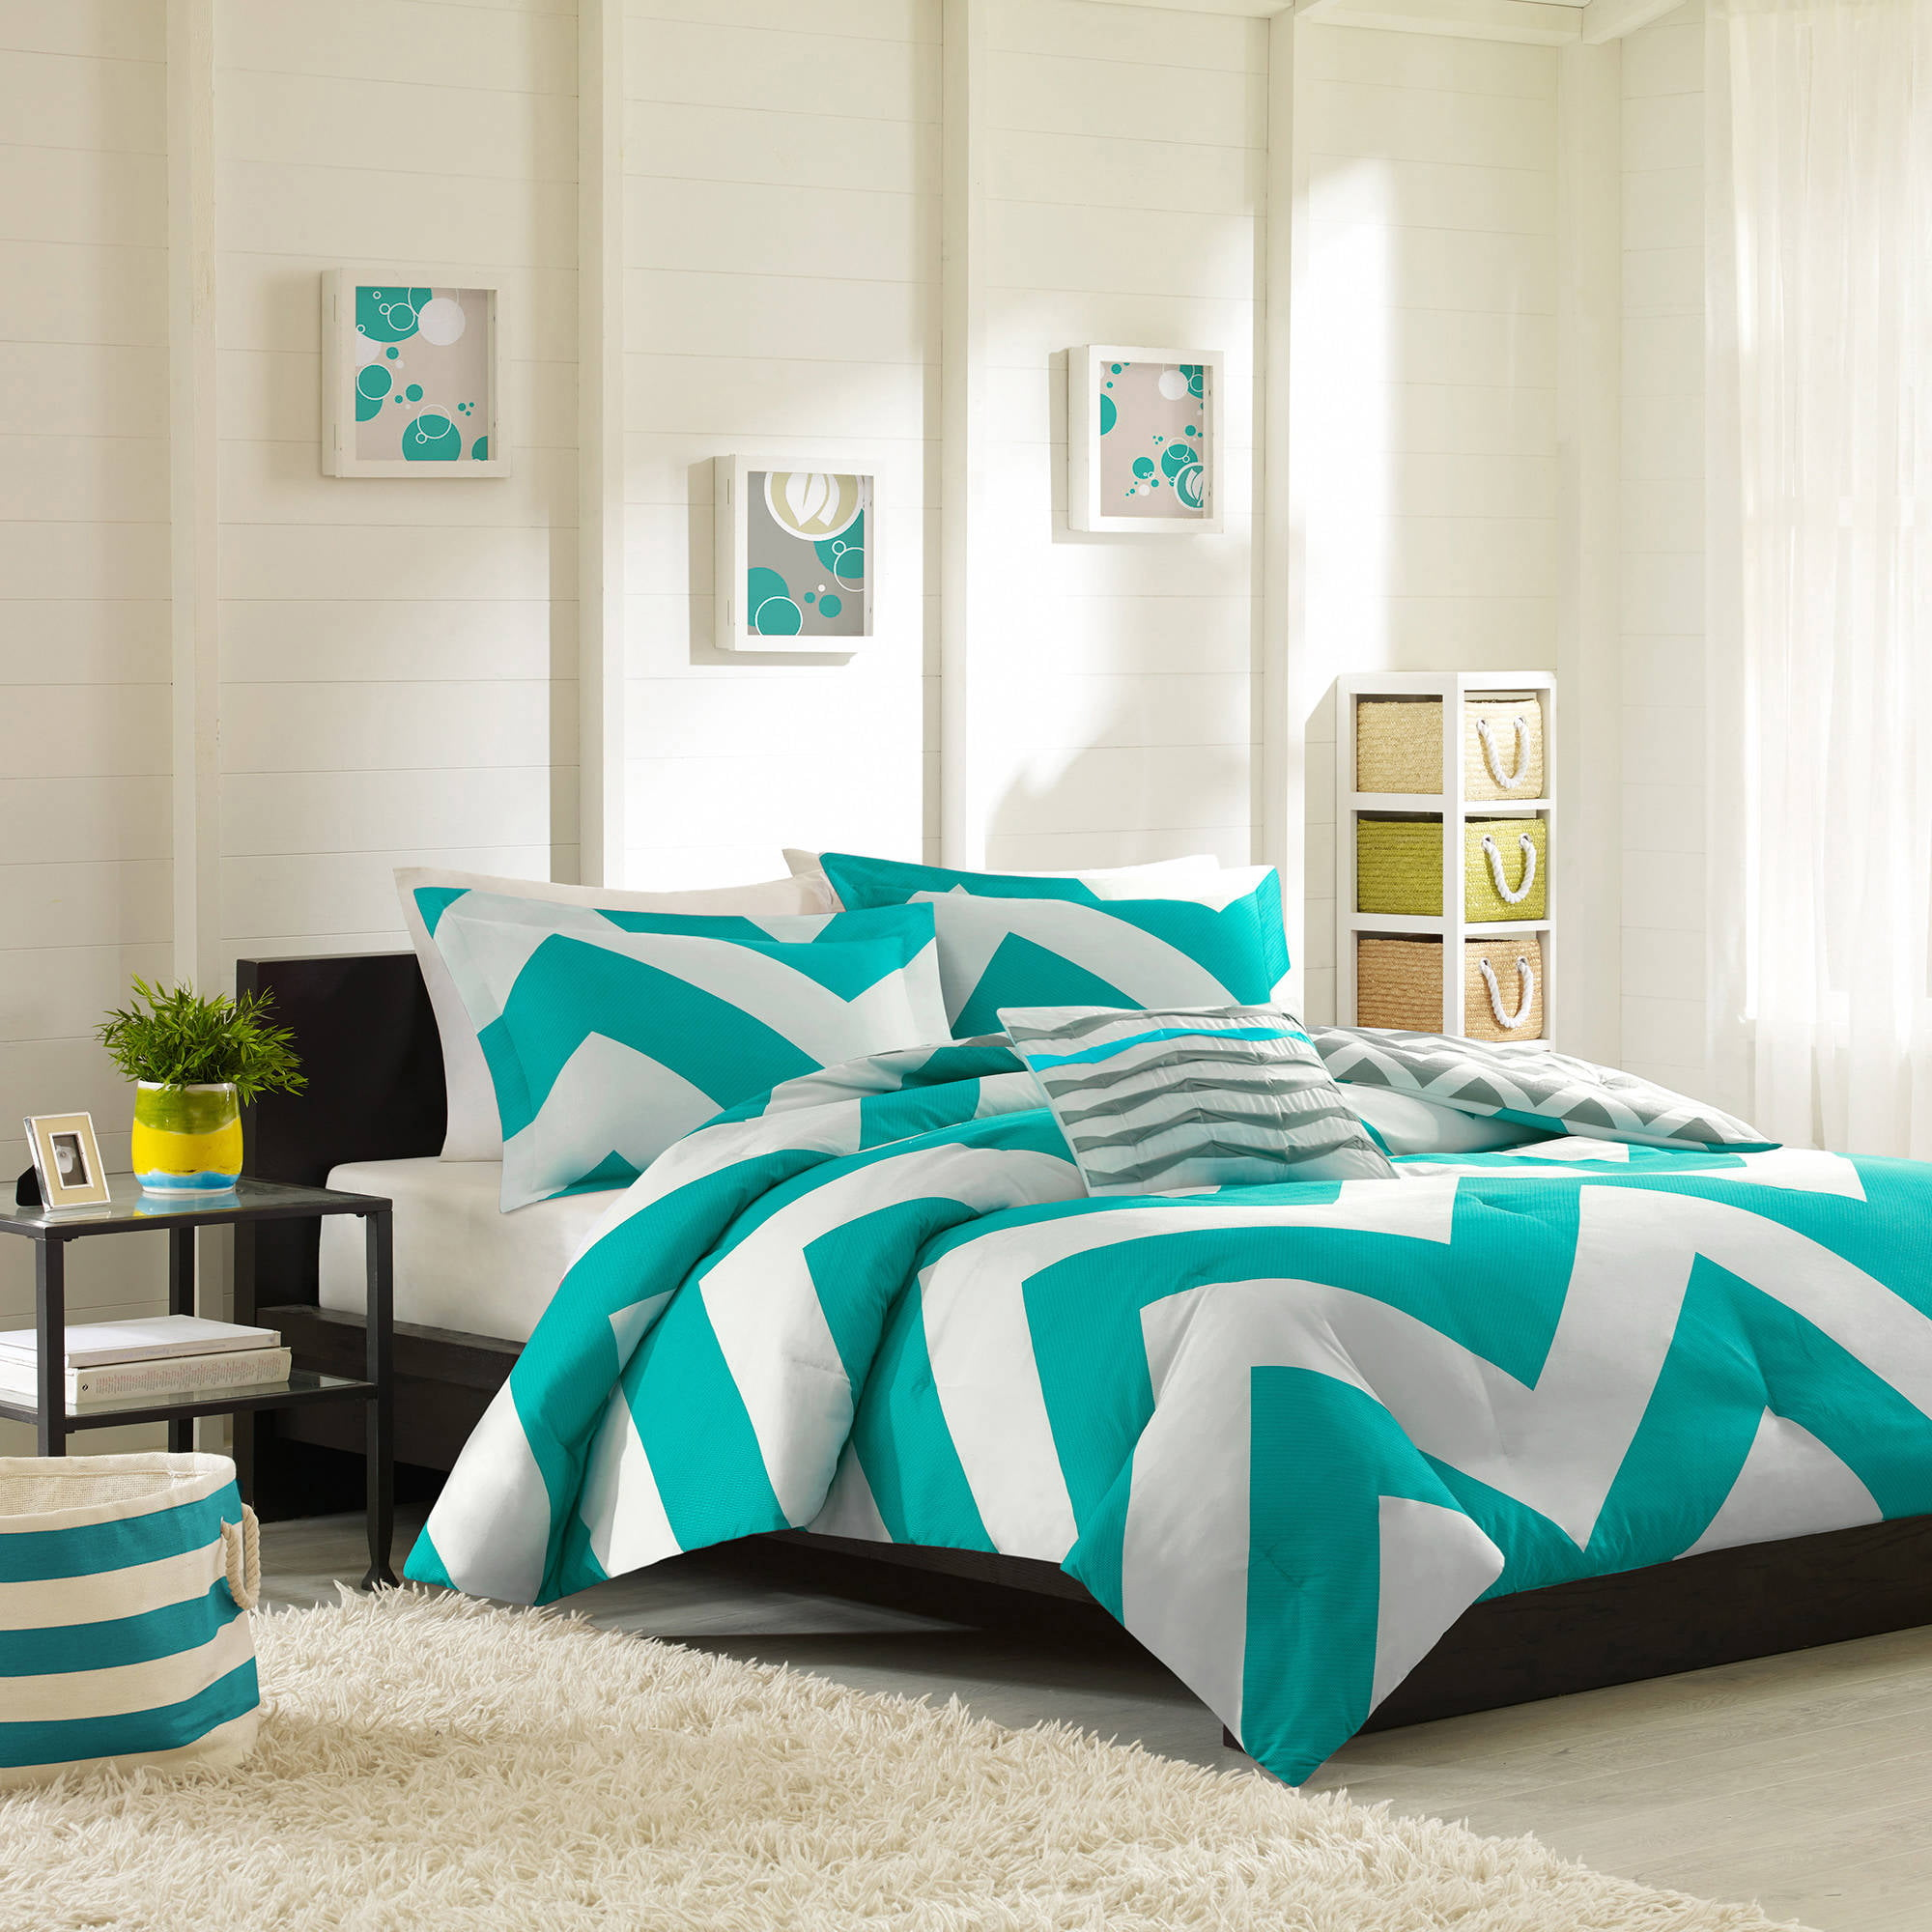 Bedding sets for teenage girls walmart - Bedding Sets For Teenage Girls Walmart 14